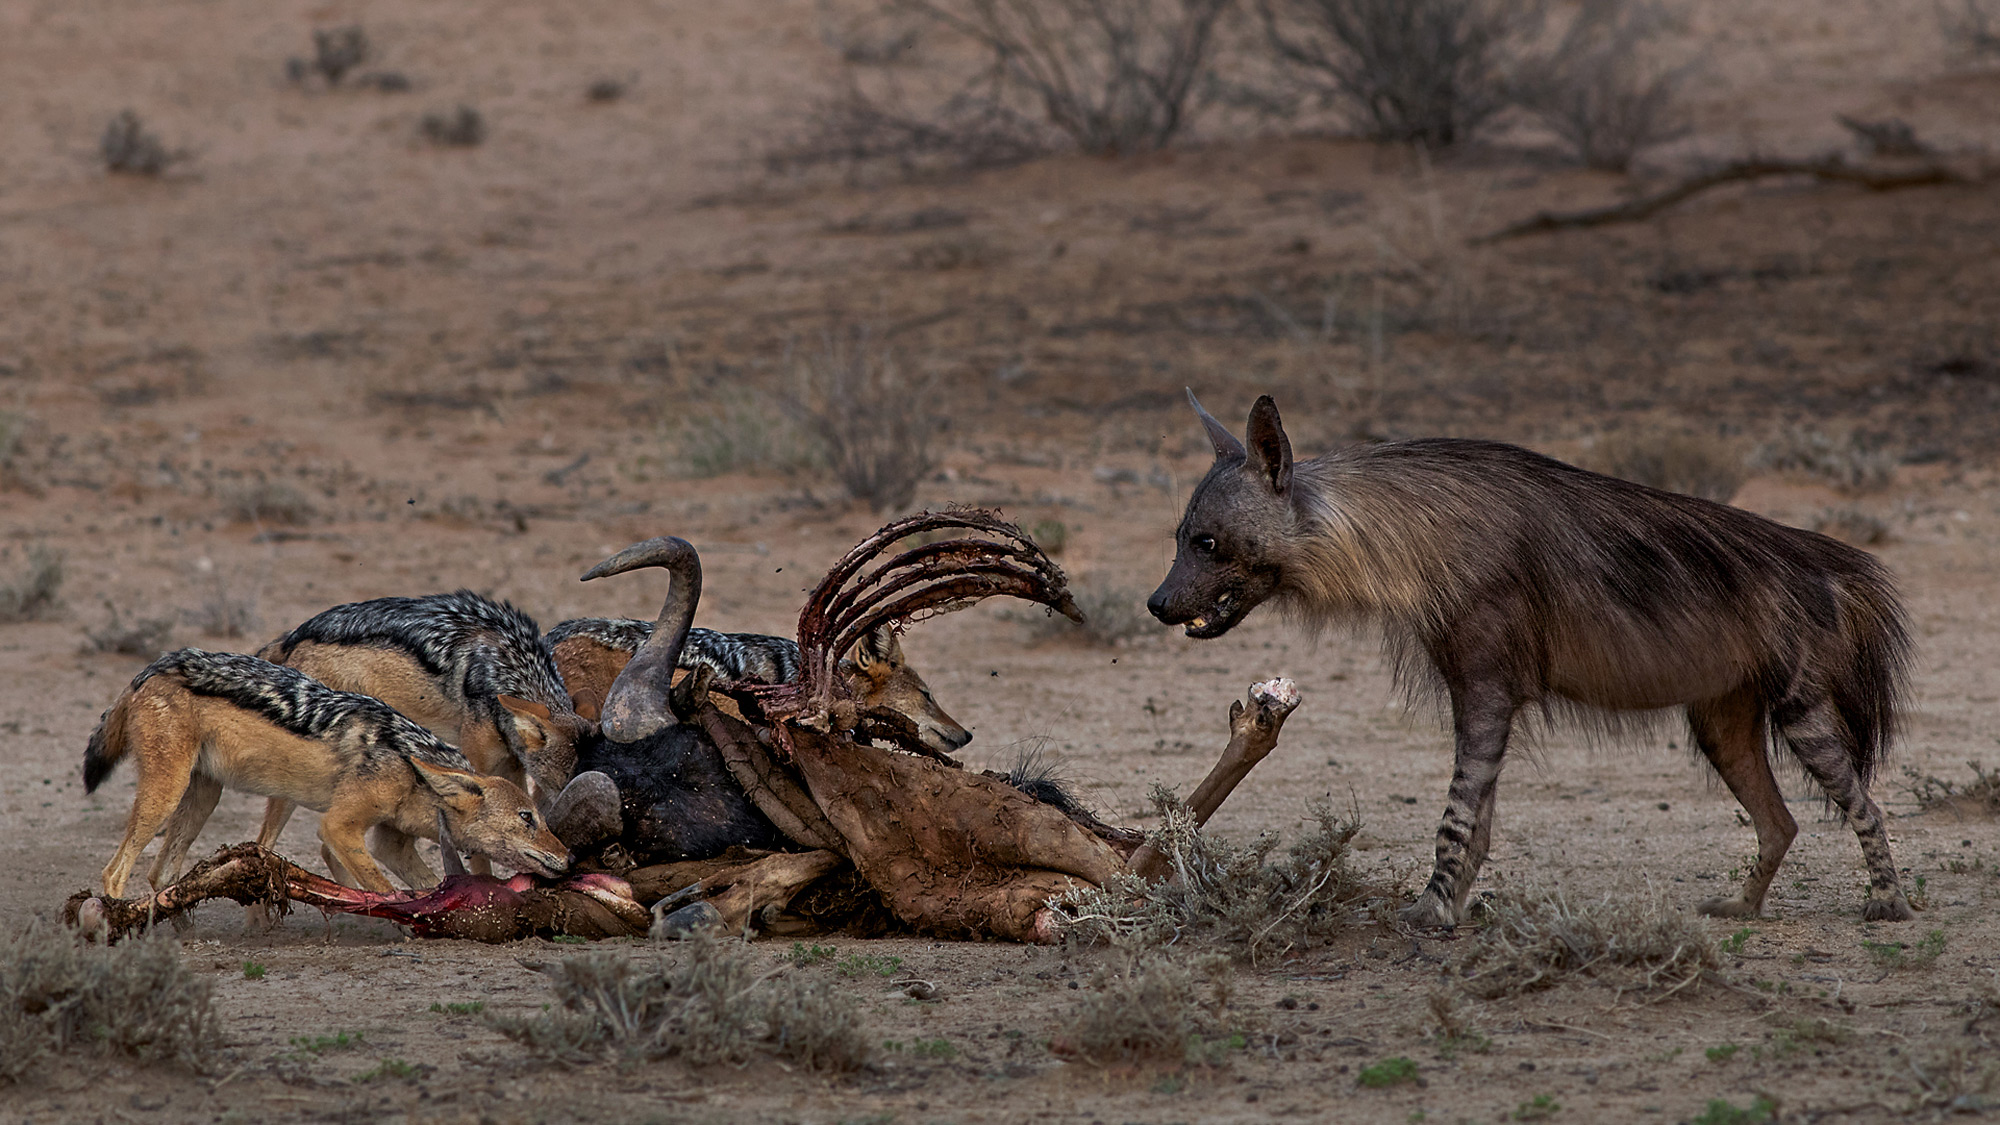 A brown hyena and black-backed jackals at a carcass in Kgalagadi Transfrontier Park